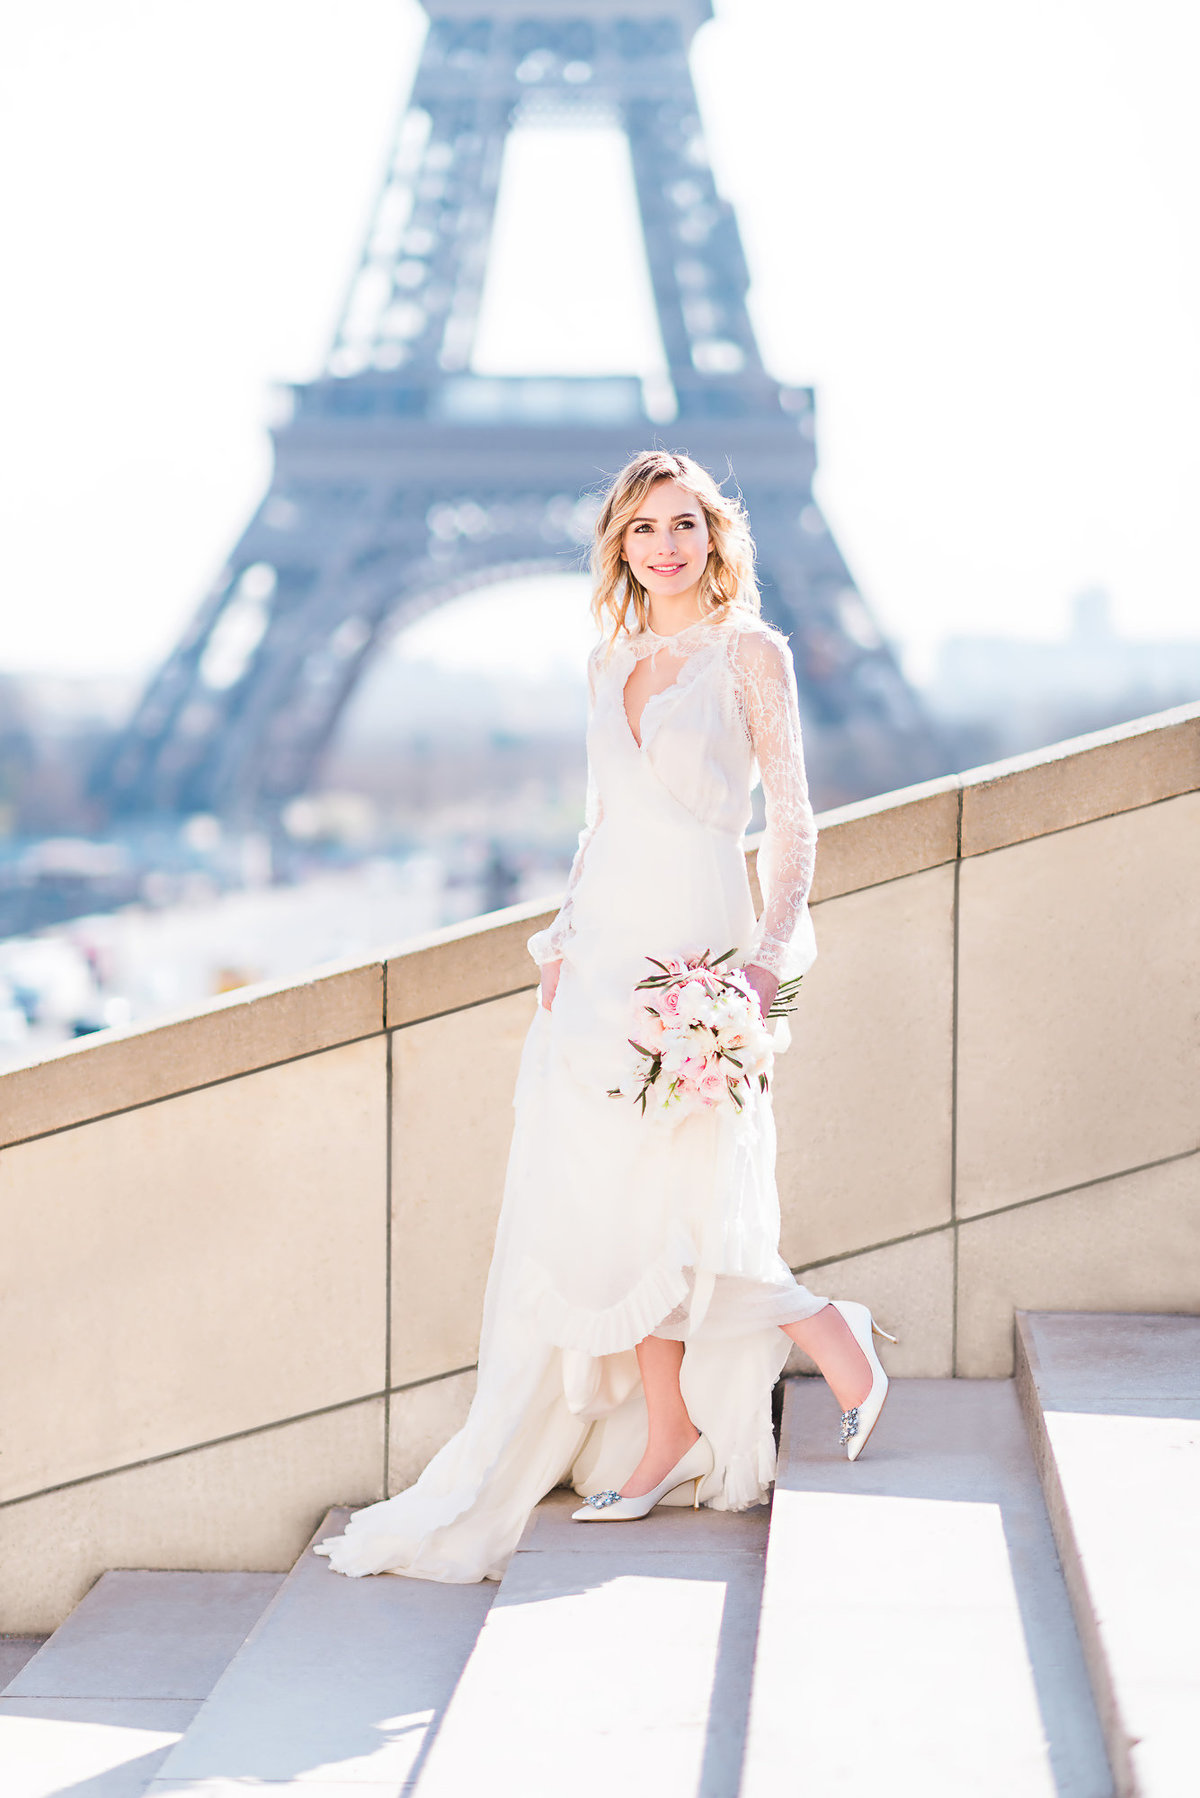 Paris_Wedding_Photographer_146